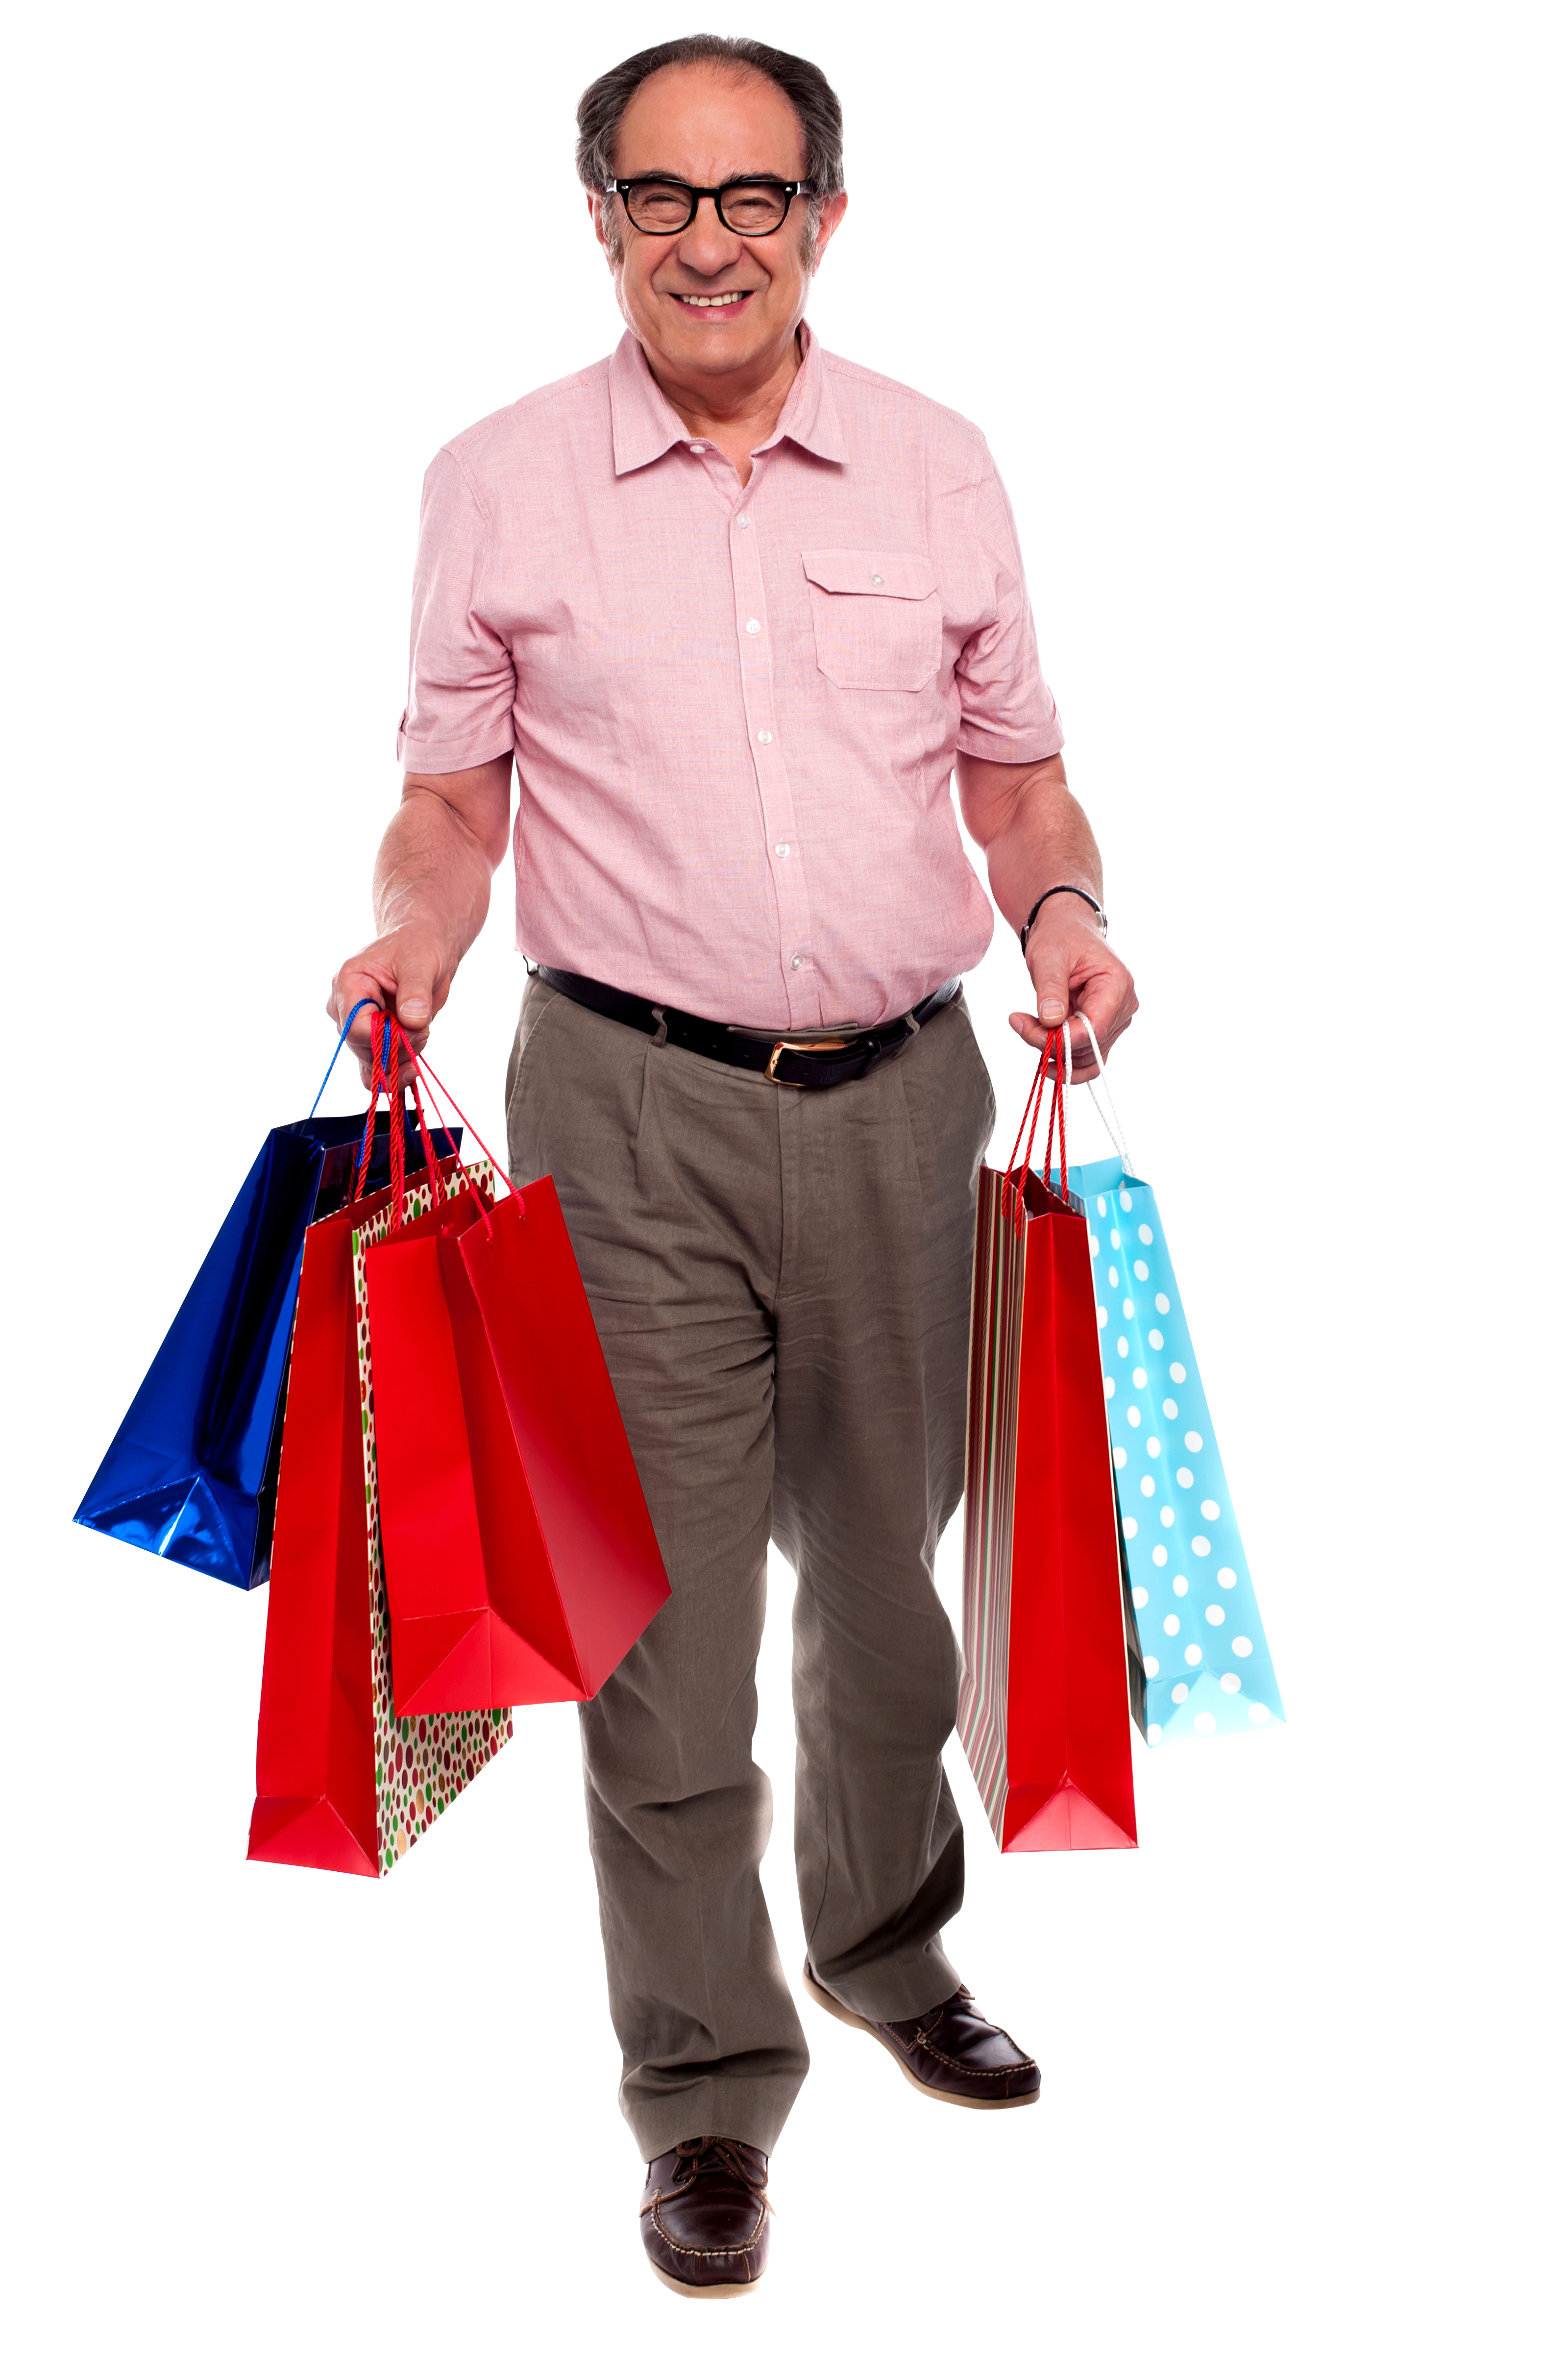 Shopping PNG Image.